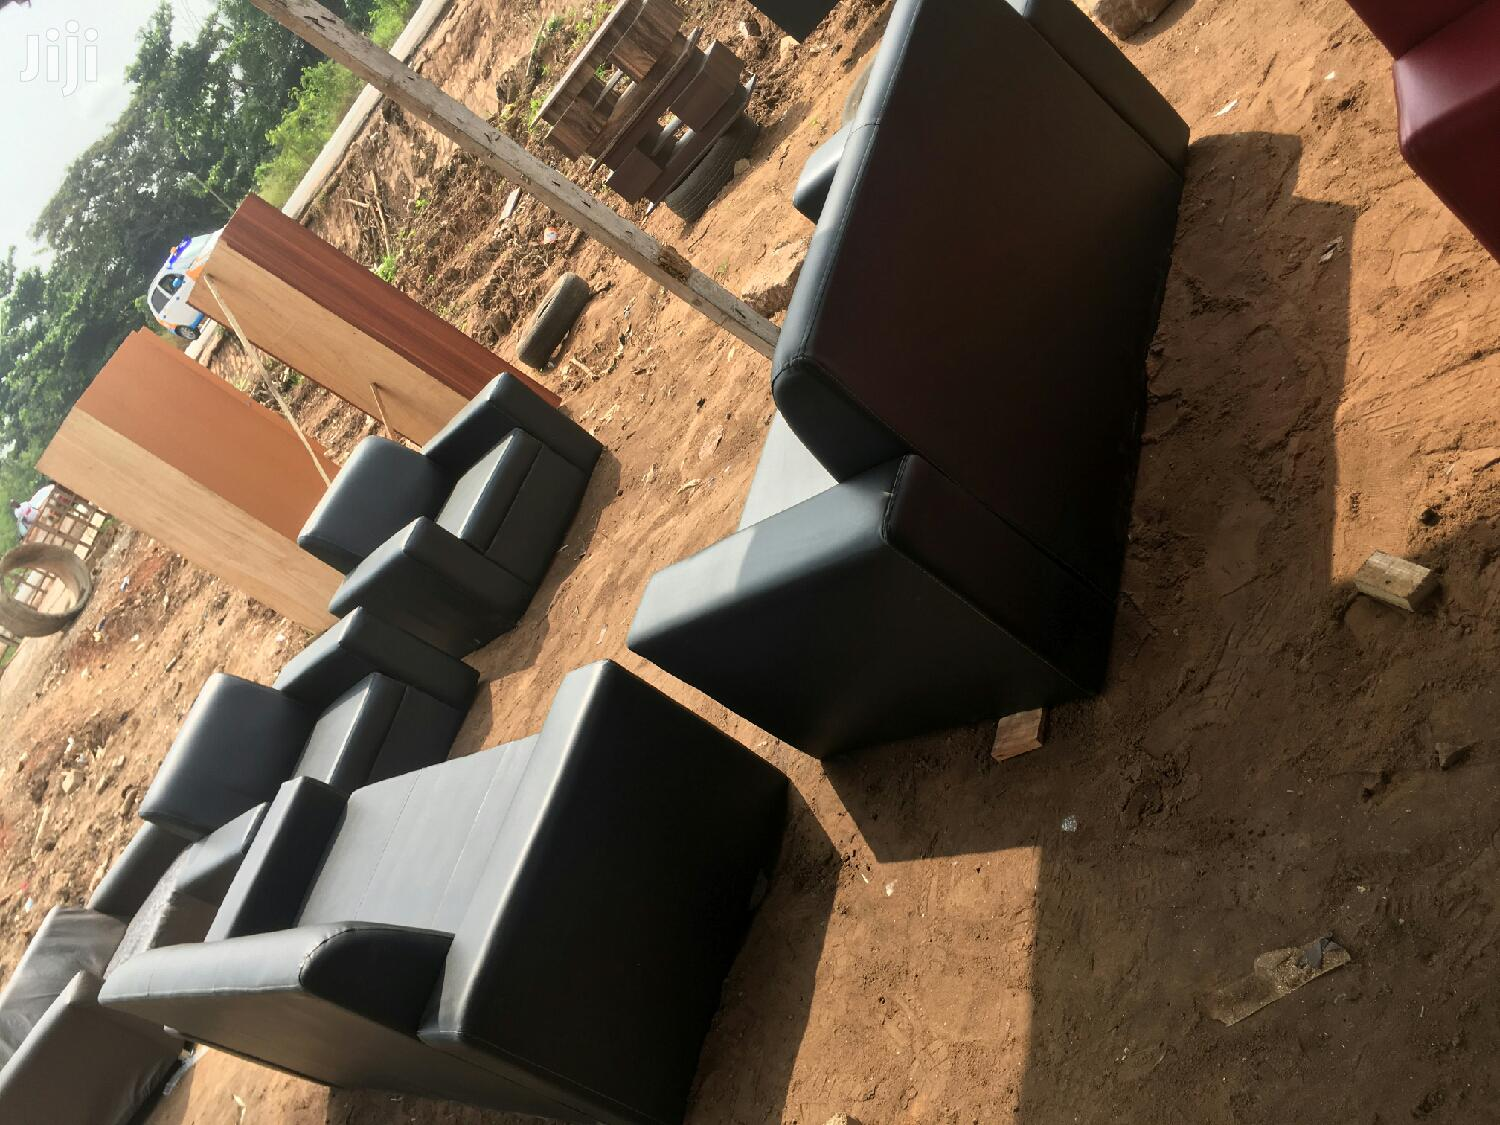 Quality and Durable Sofas at Affordable Price With Delivery